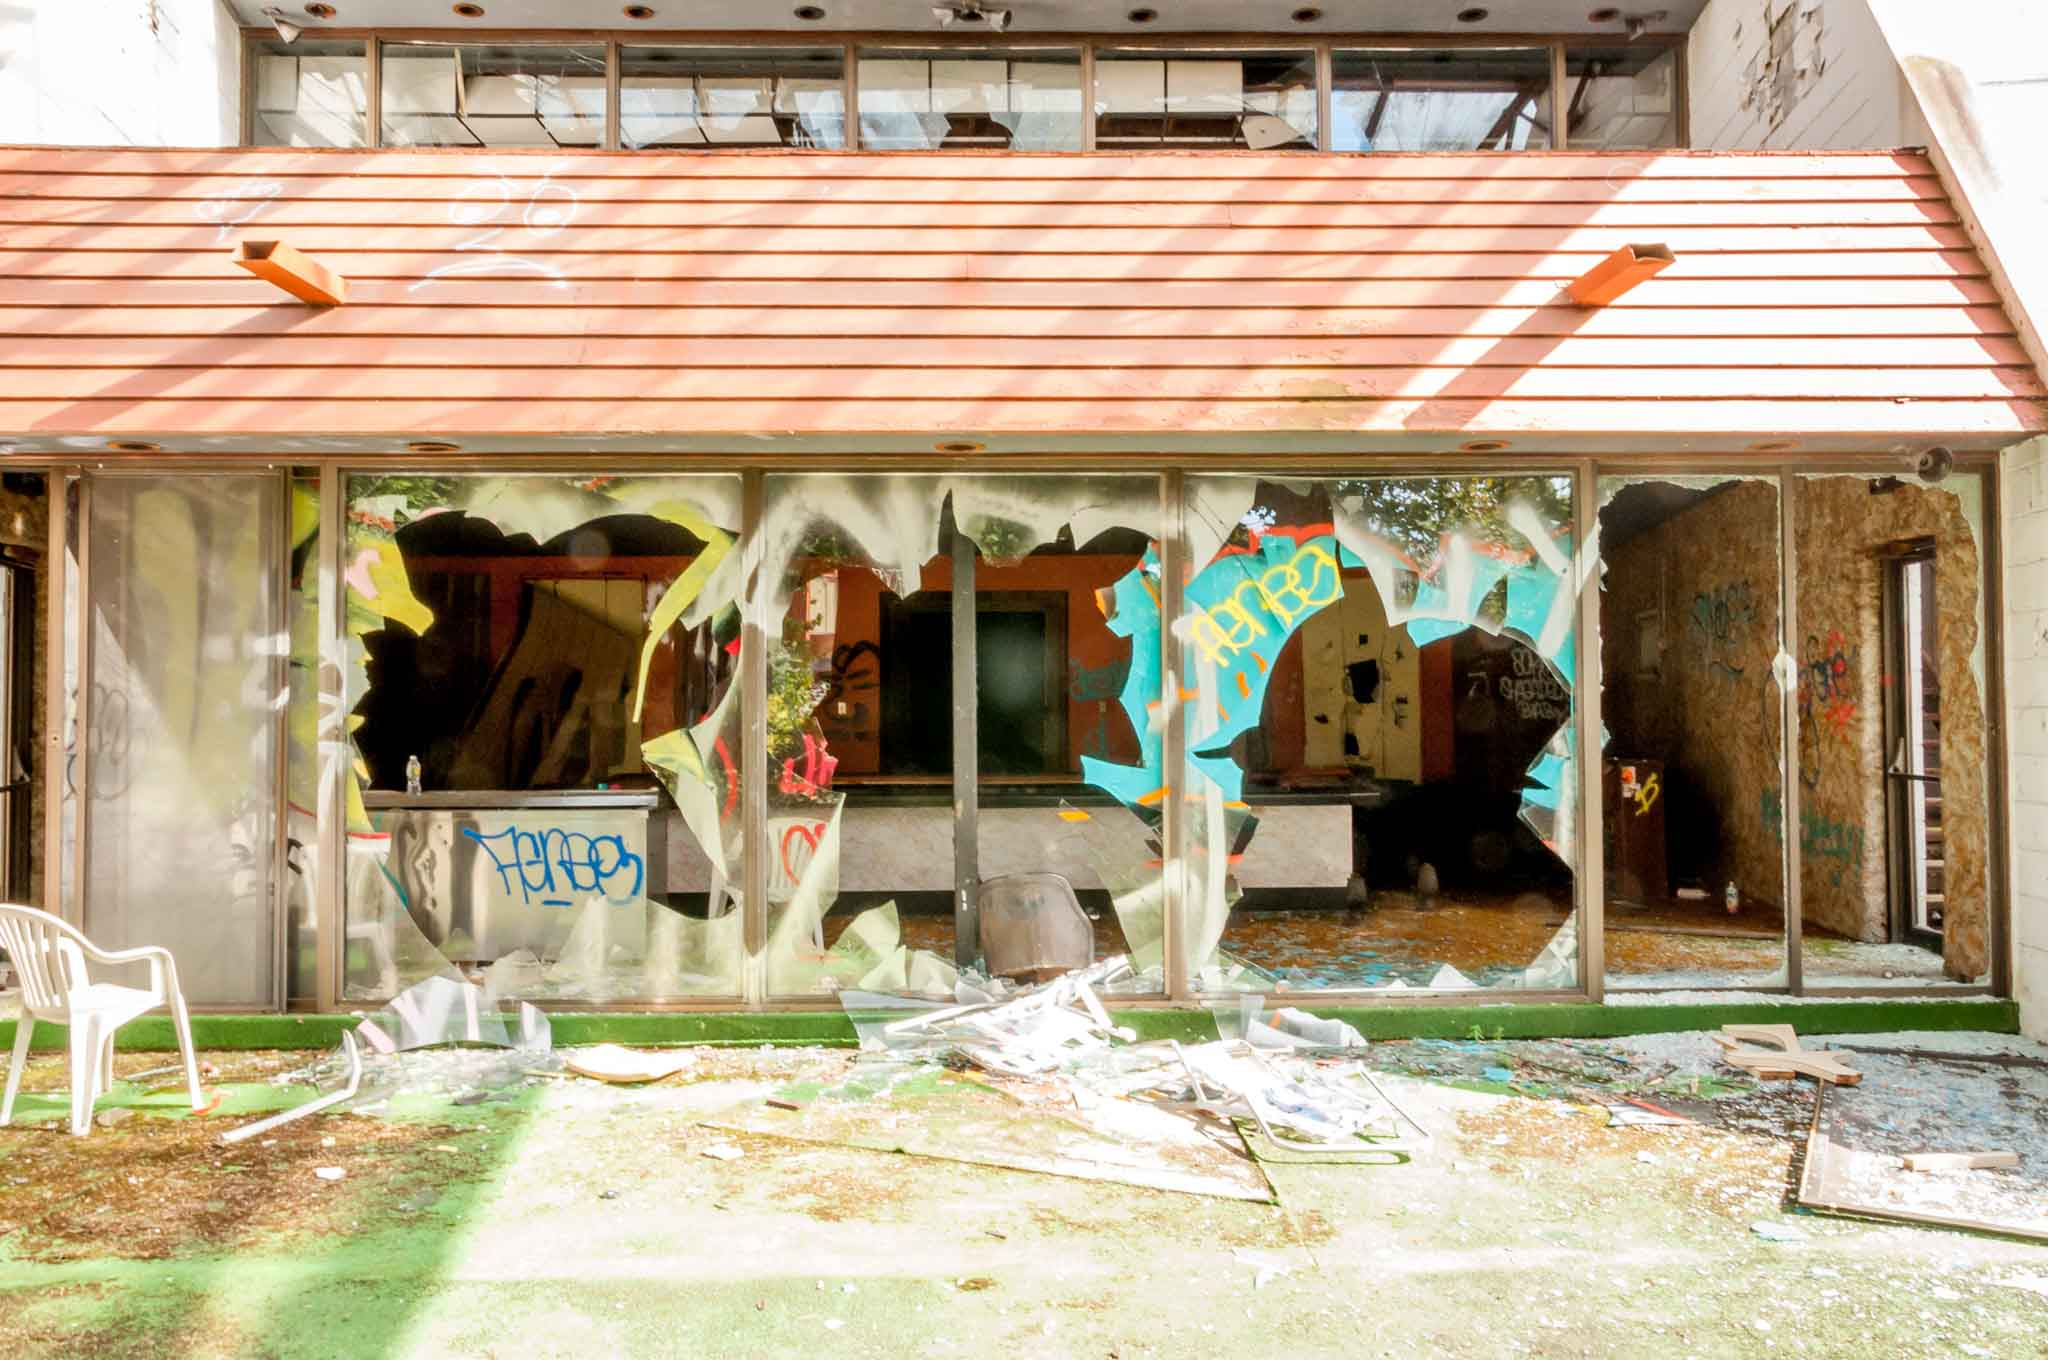 Vandalism and broken windows at an old hotel